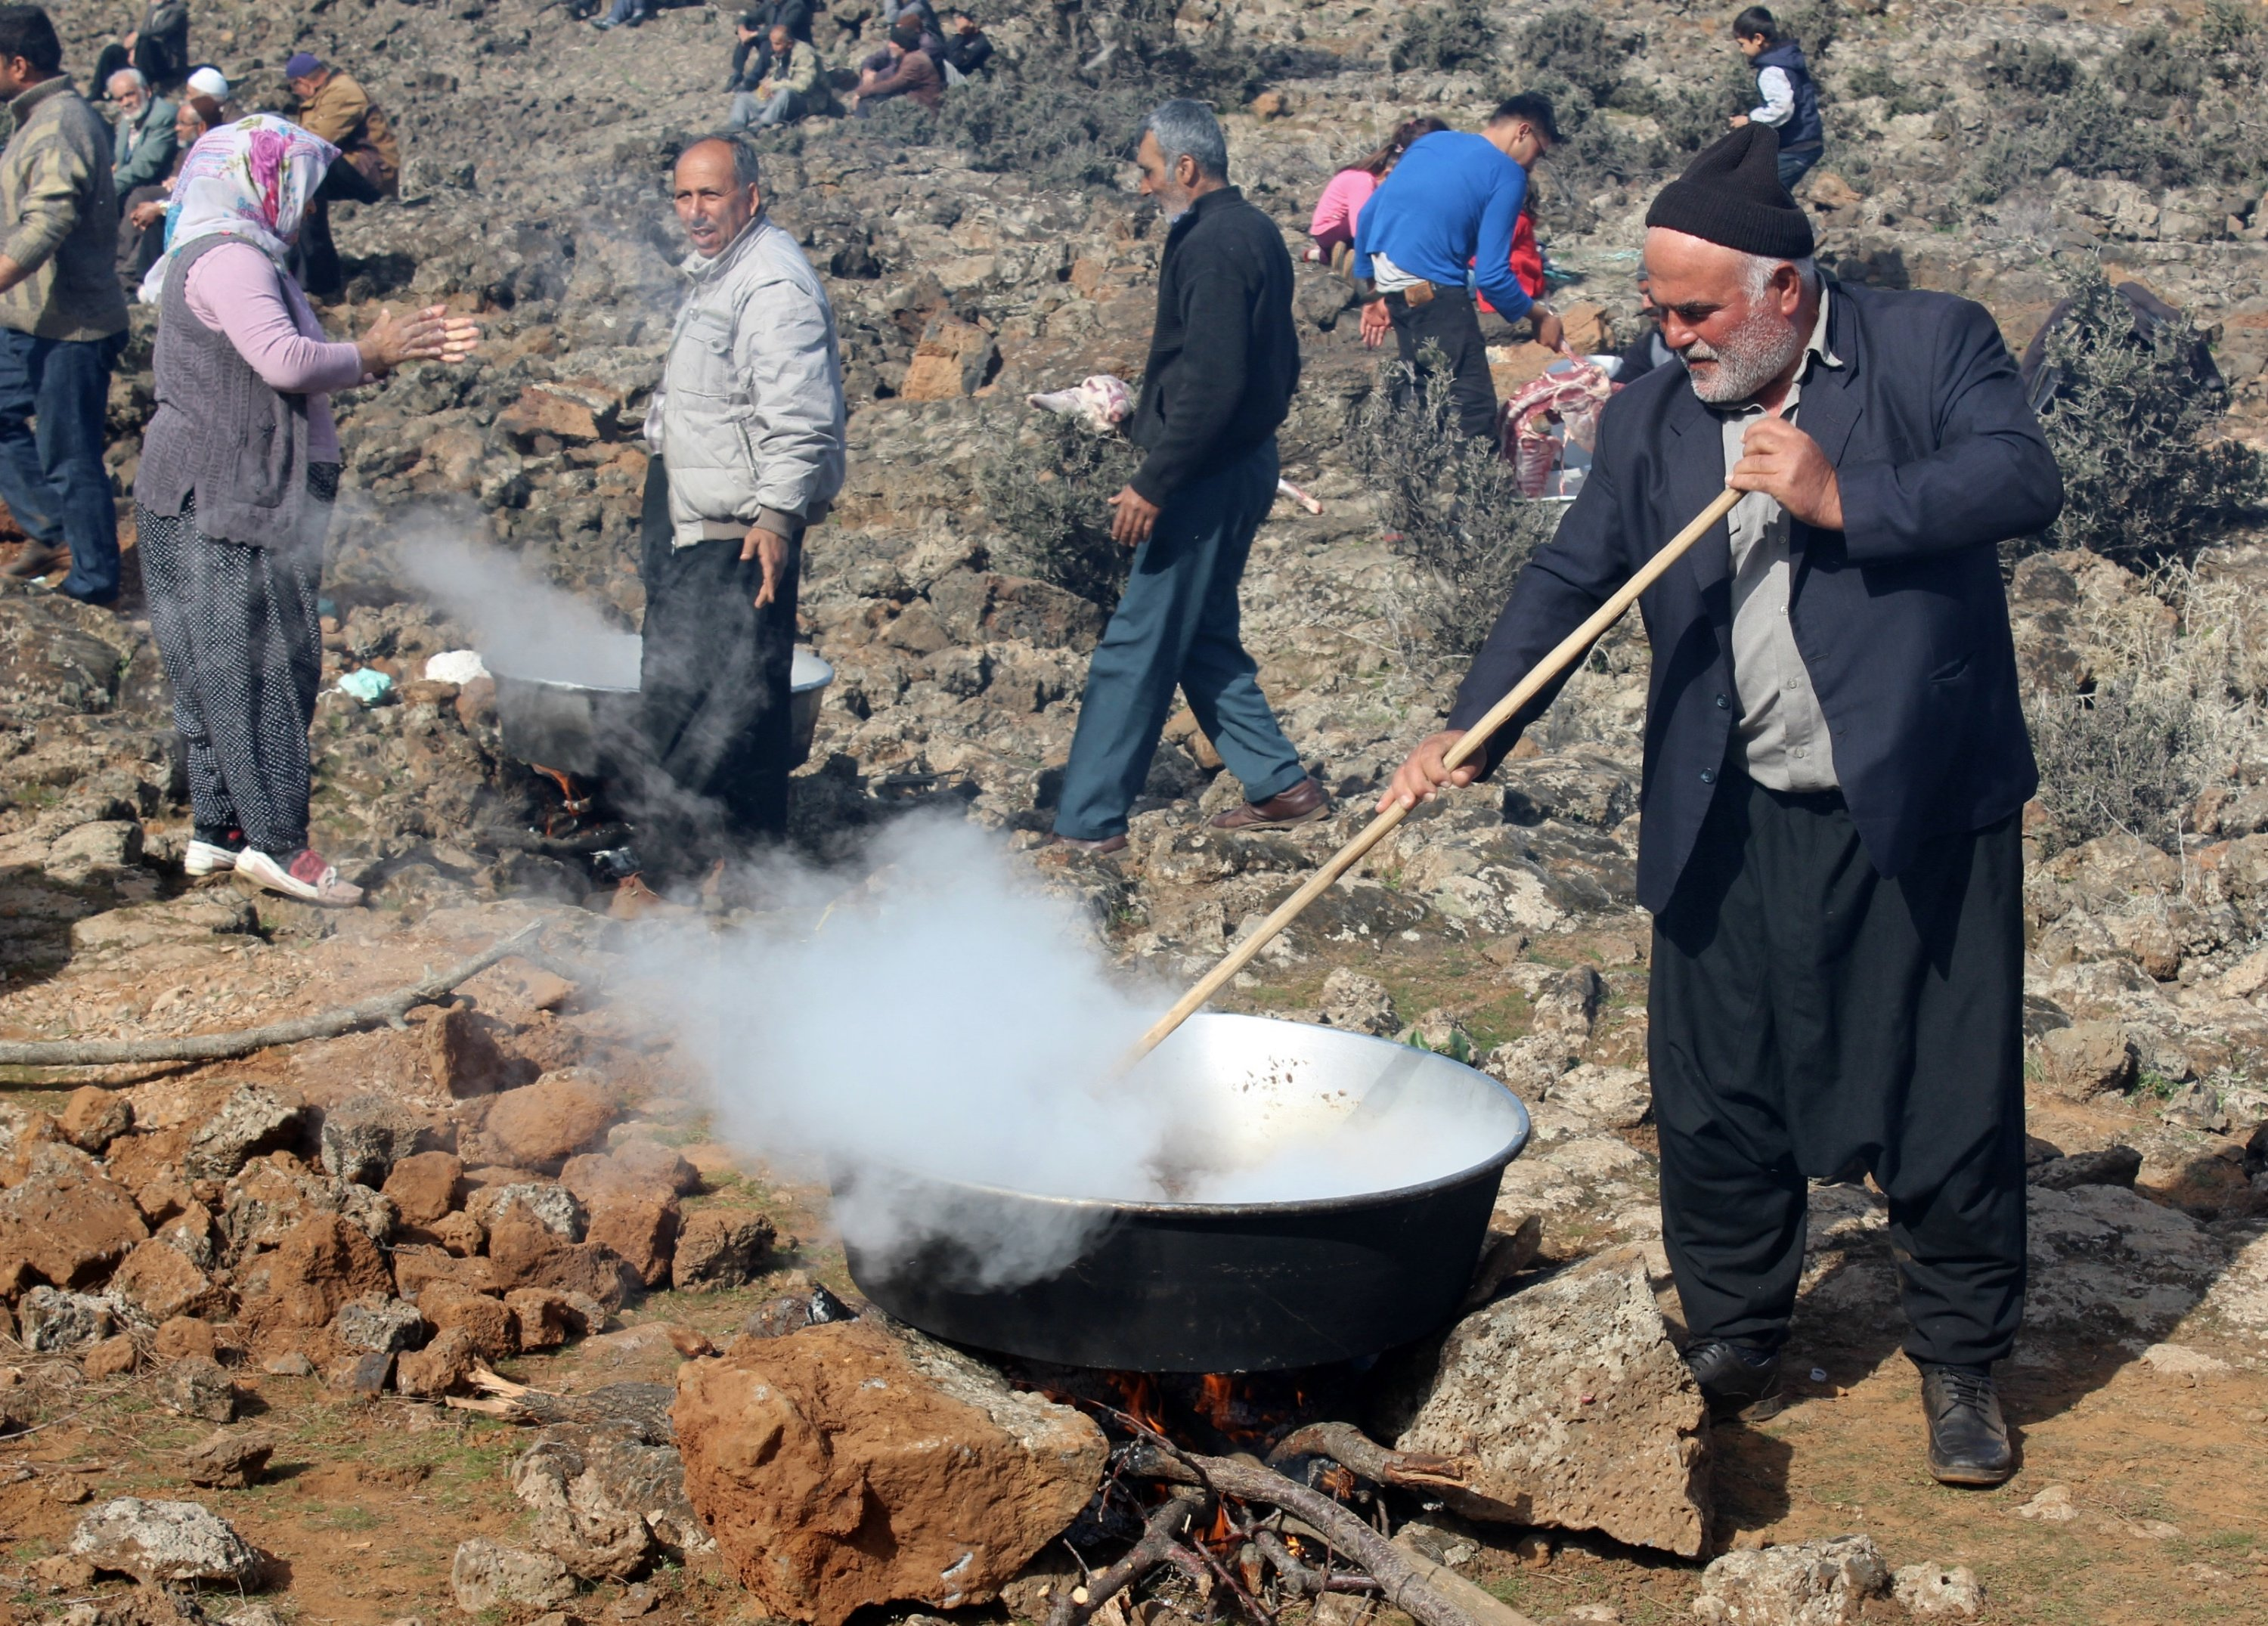 A local stirs a cauldron of food after a rain praying ritual in Hatay's Hassa district in southern Turkey, Feb. 27, 2020. (AA Photo)